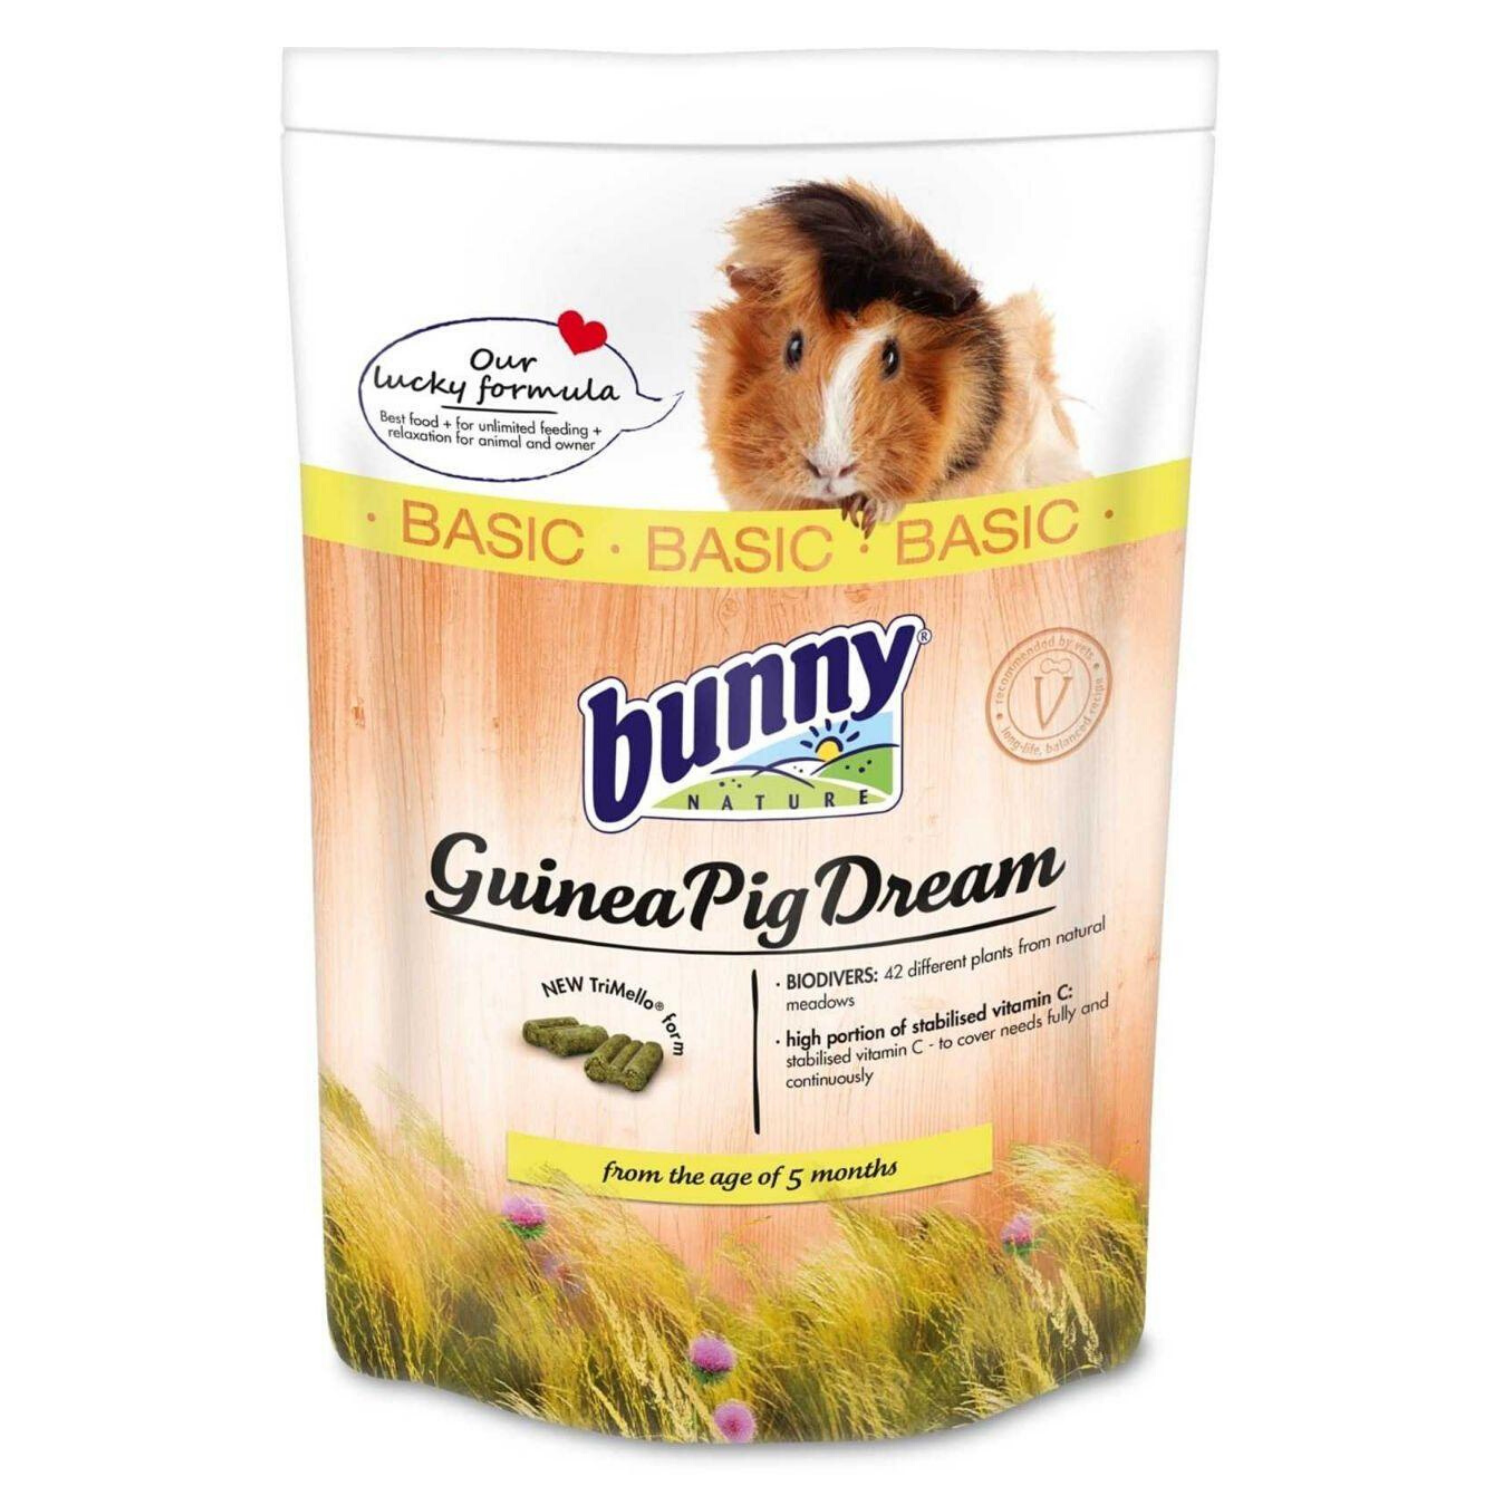 Bunny Nature Guinea Pig Dream Basic - 750g / 1.5kg